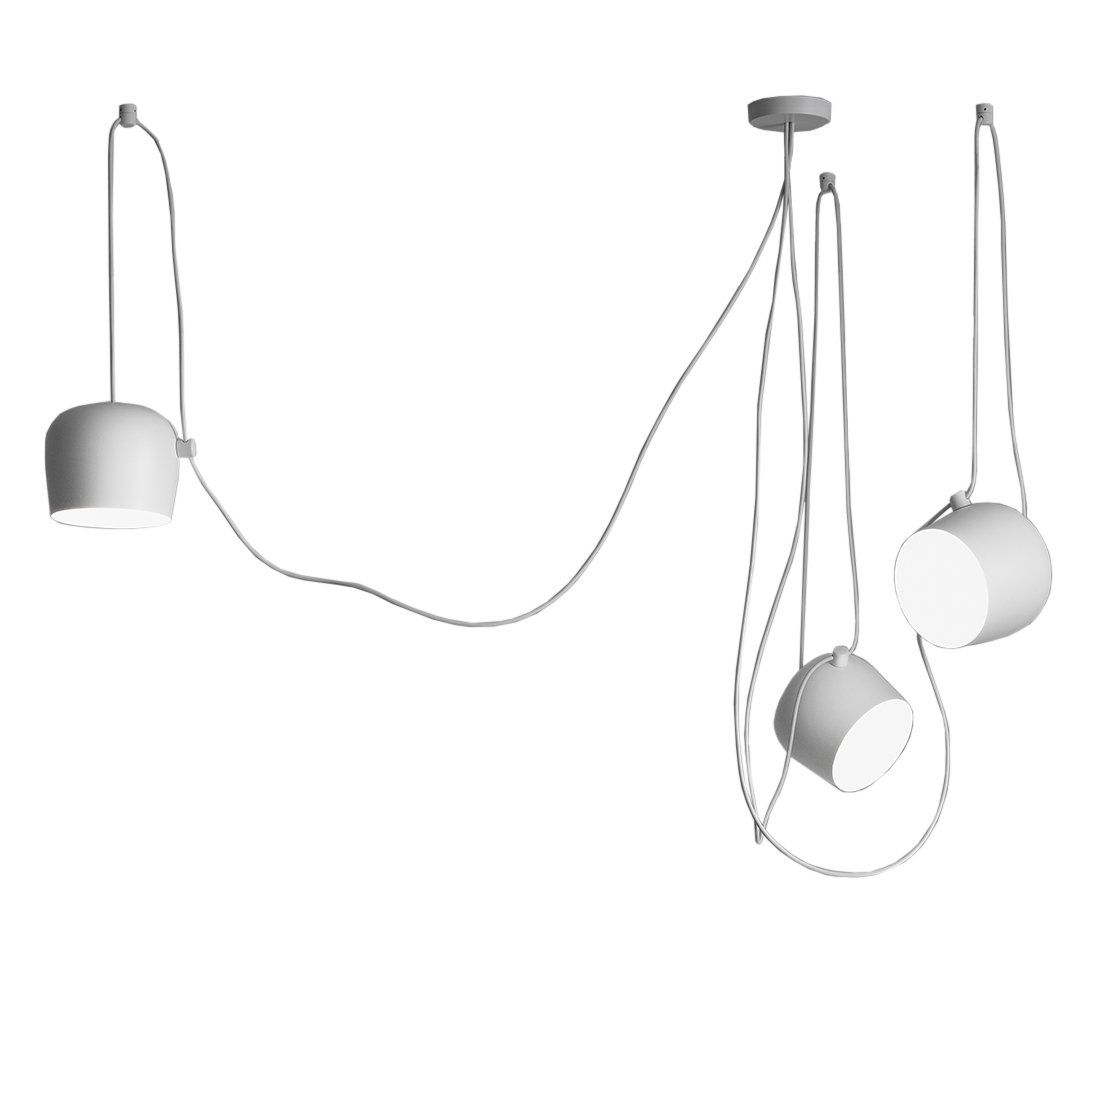 FLOS Aim Hanglamp Set van 3 - Wit